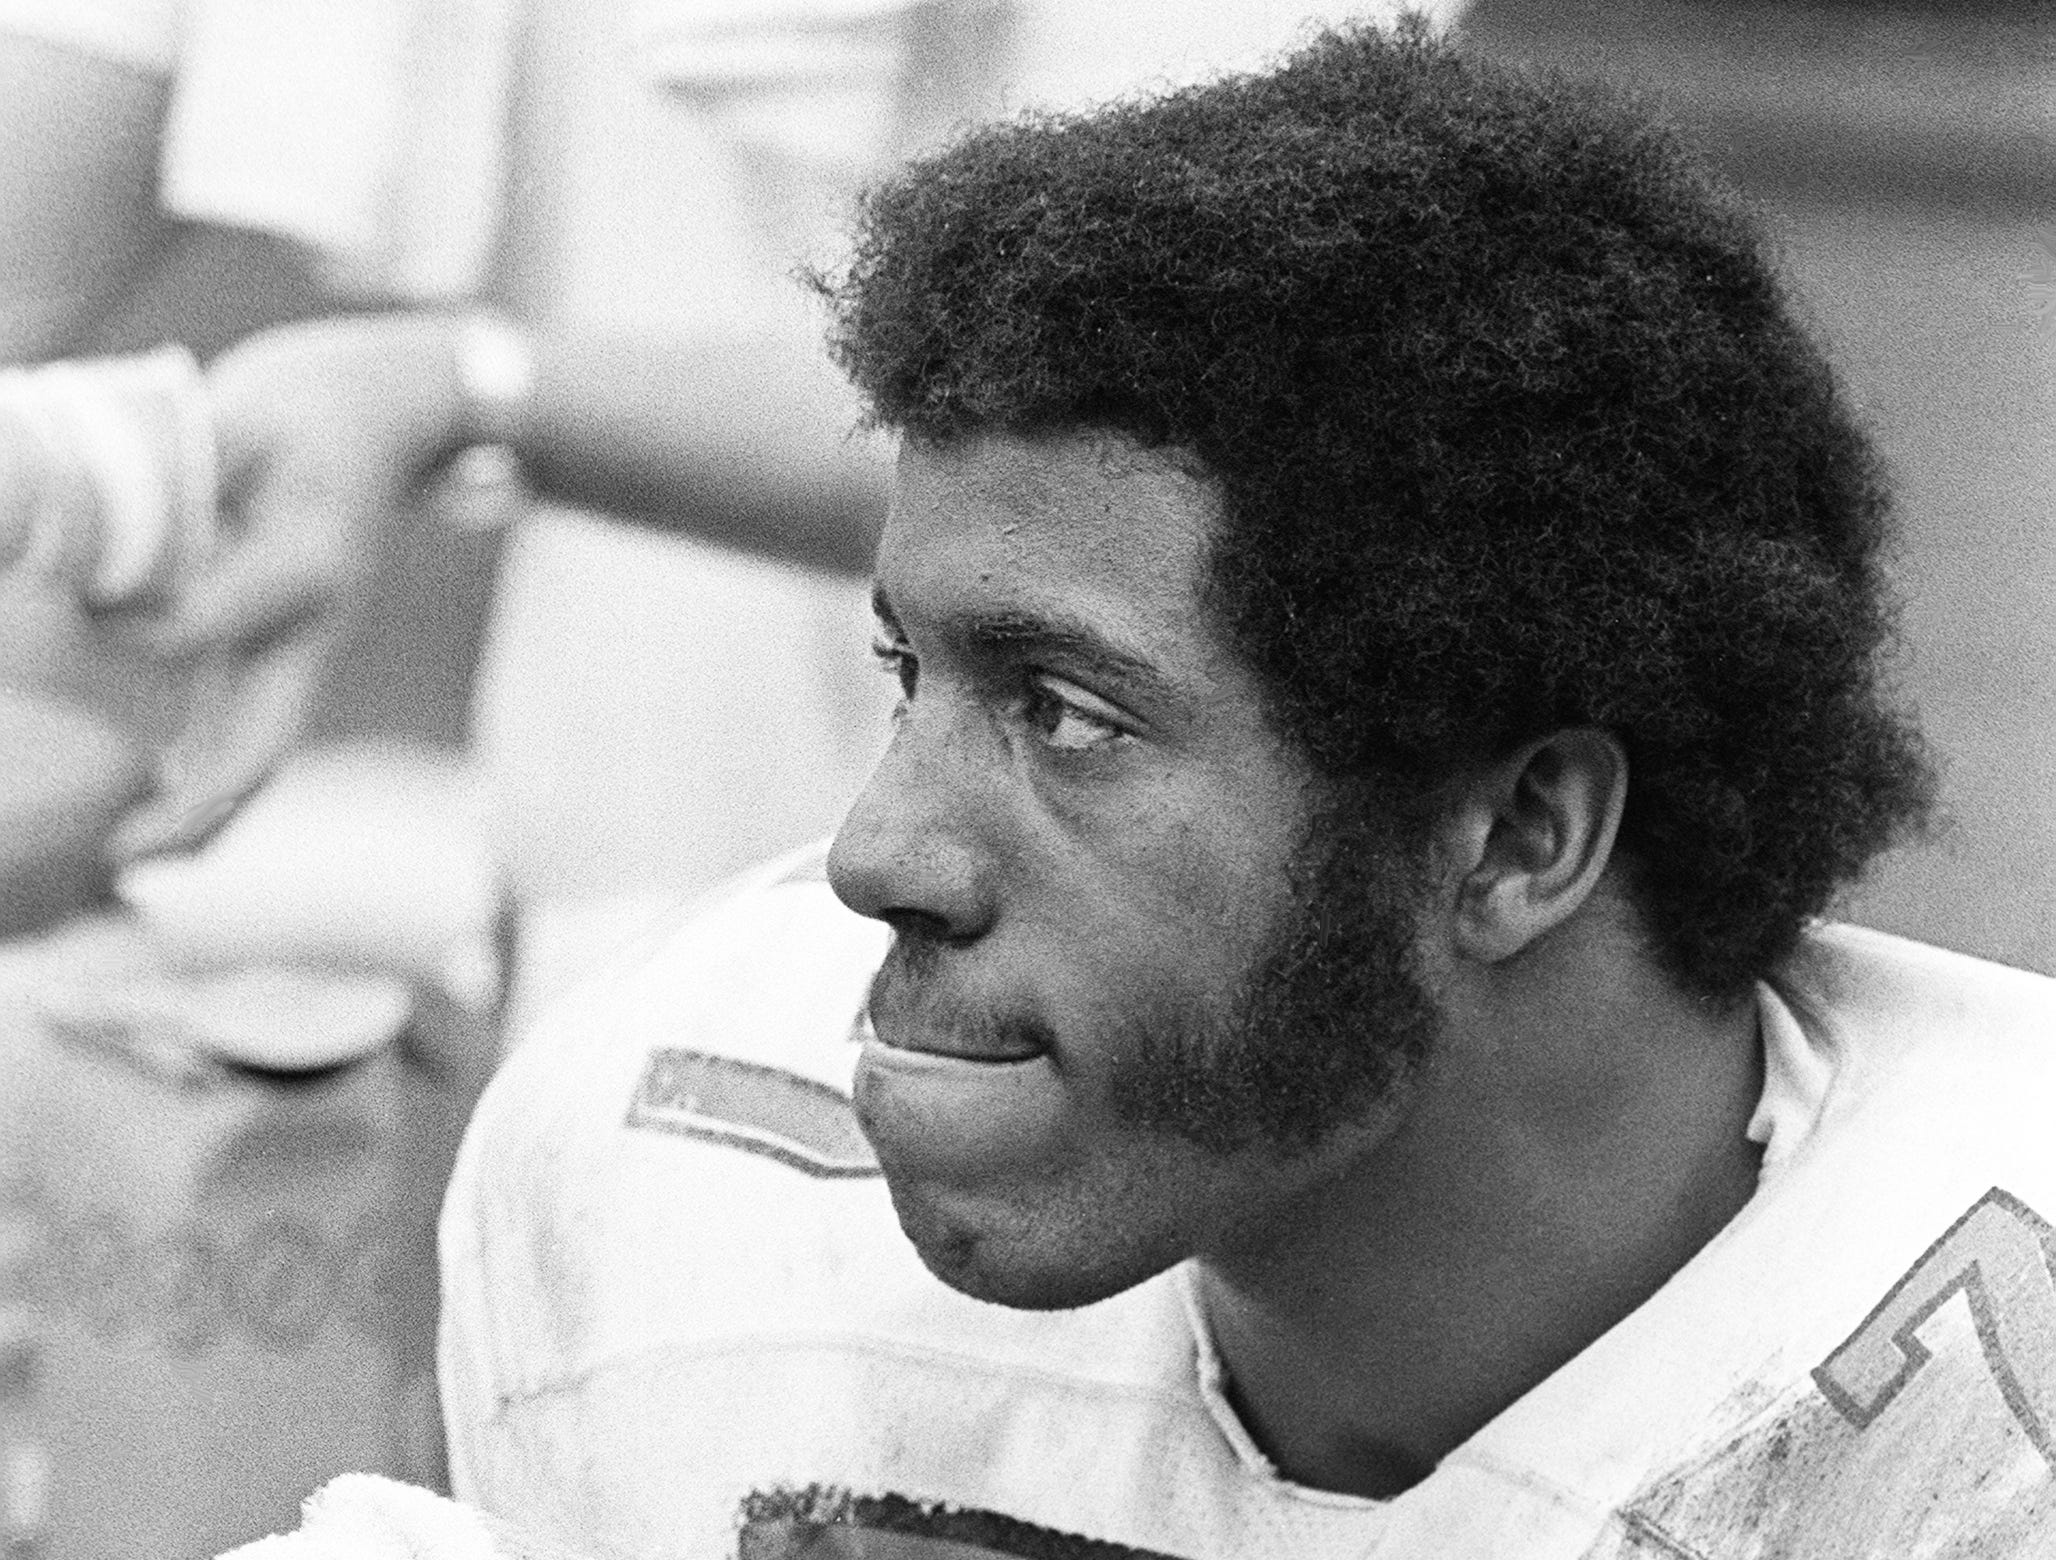 Vanderbilt defensive tackle Dennis Harrison (77) catch his breath while the offense is on the field against Texas Tech Dec. 28, 1974. Harrison was voted the game's Most Valuable Defensive player for his performance in the game.